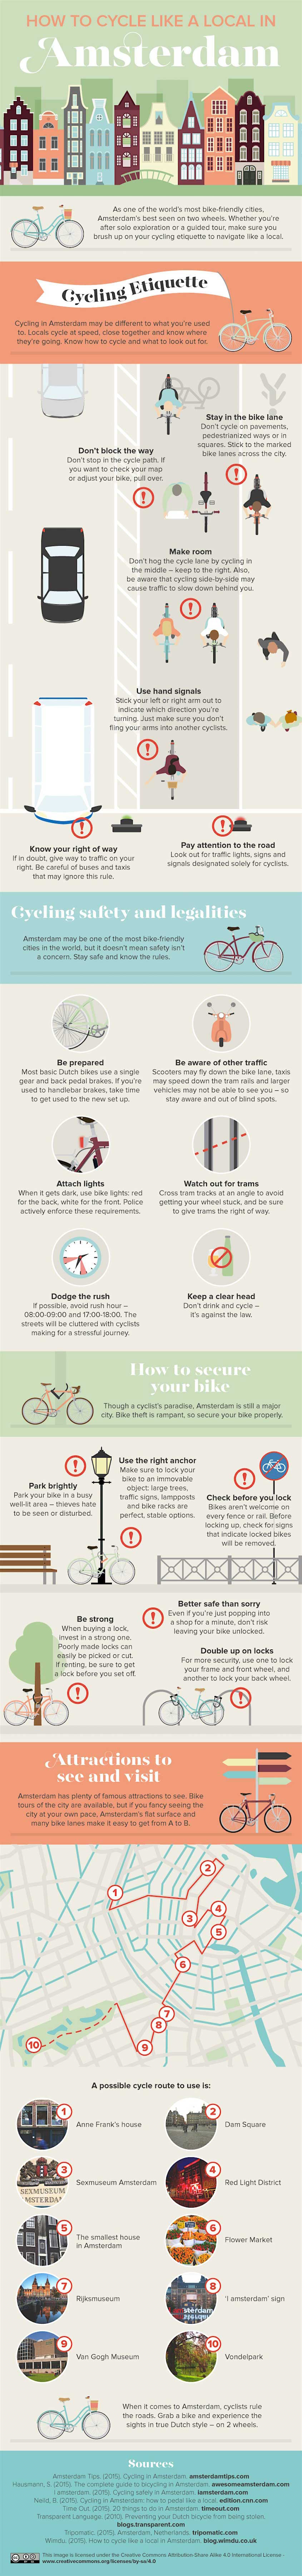 Amsterdam infographic_urbancycling